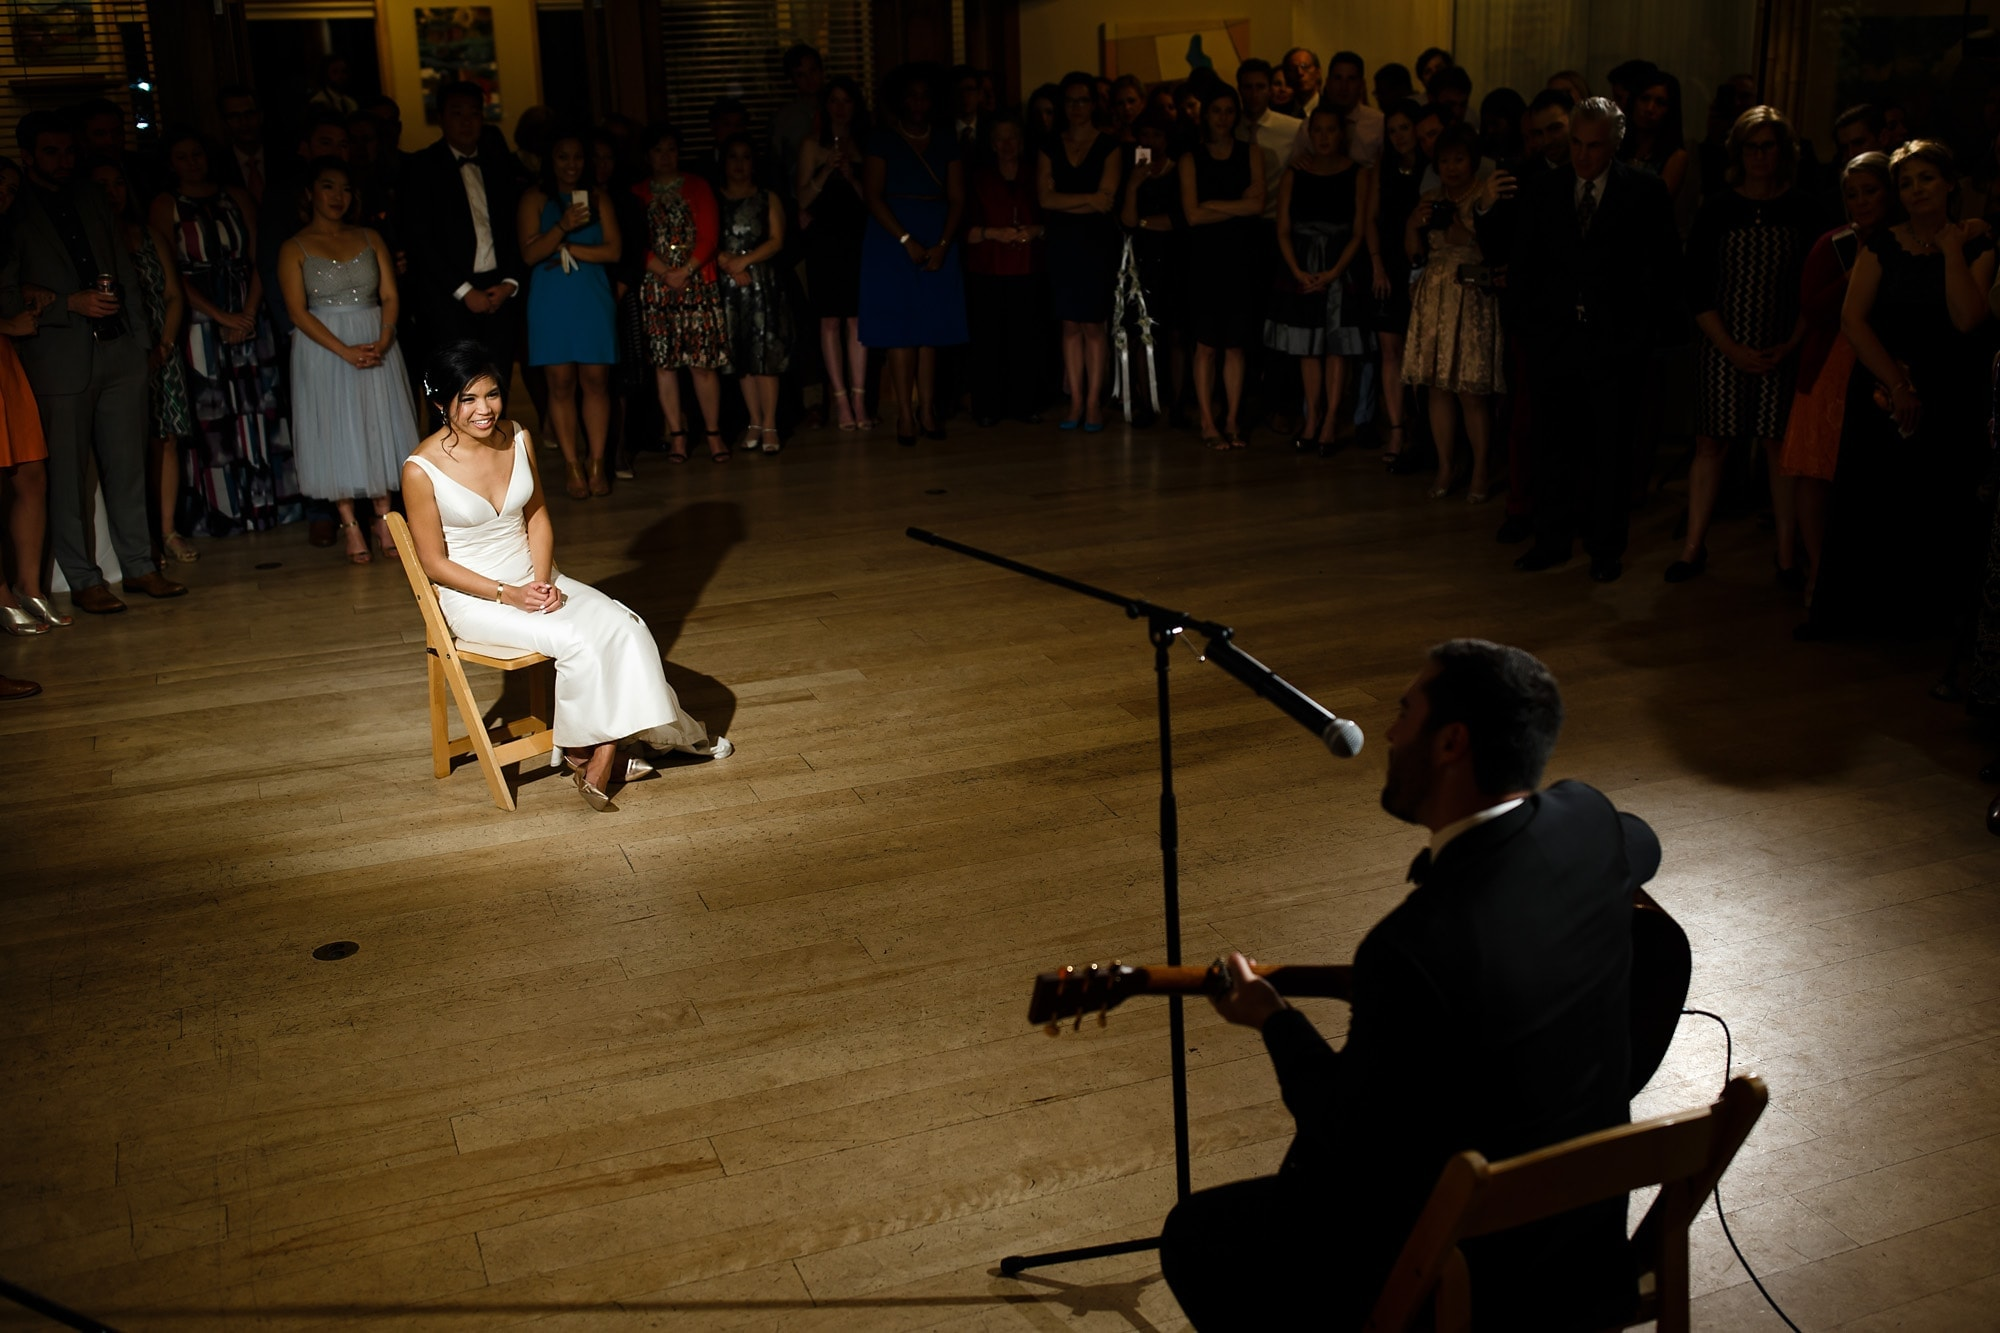 Bryan performs a song for his bride during their wedding at Rembrandt Yard